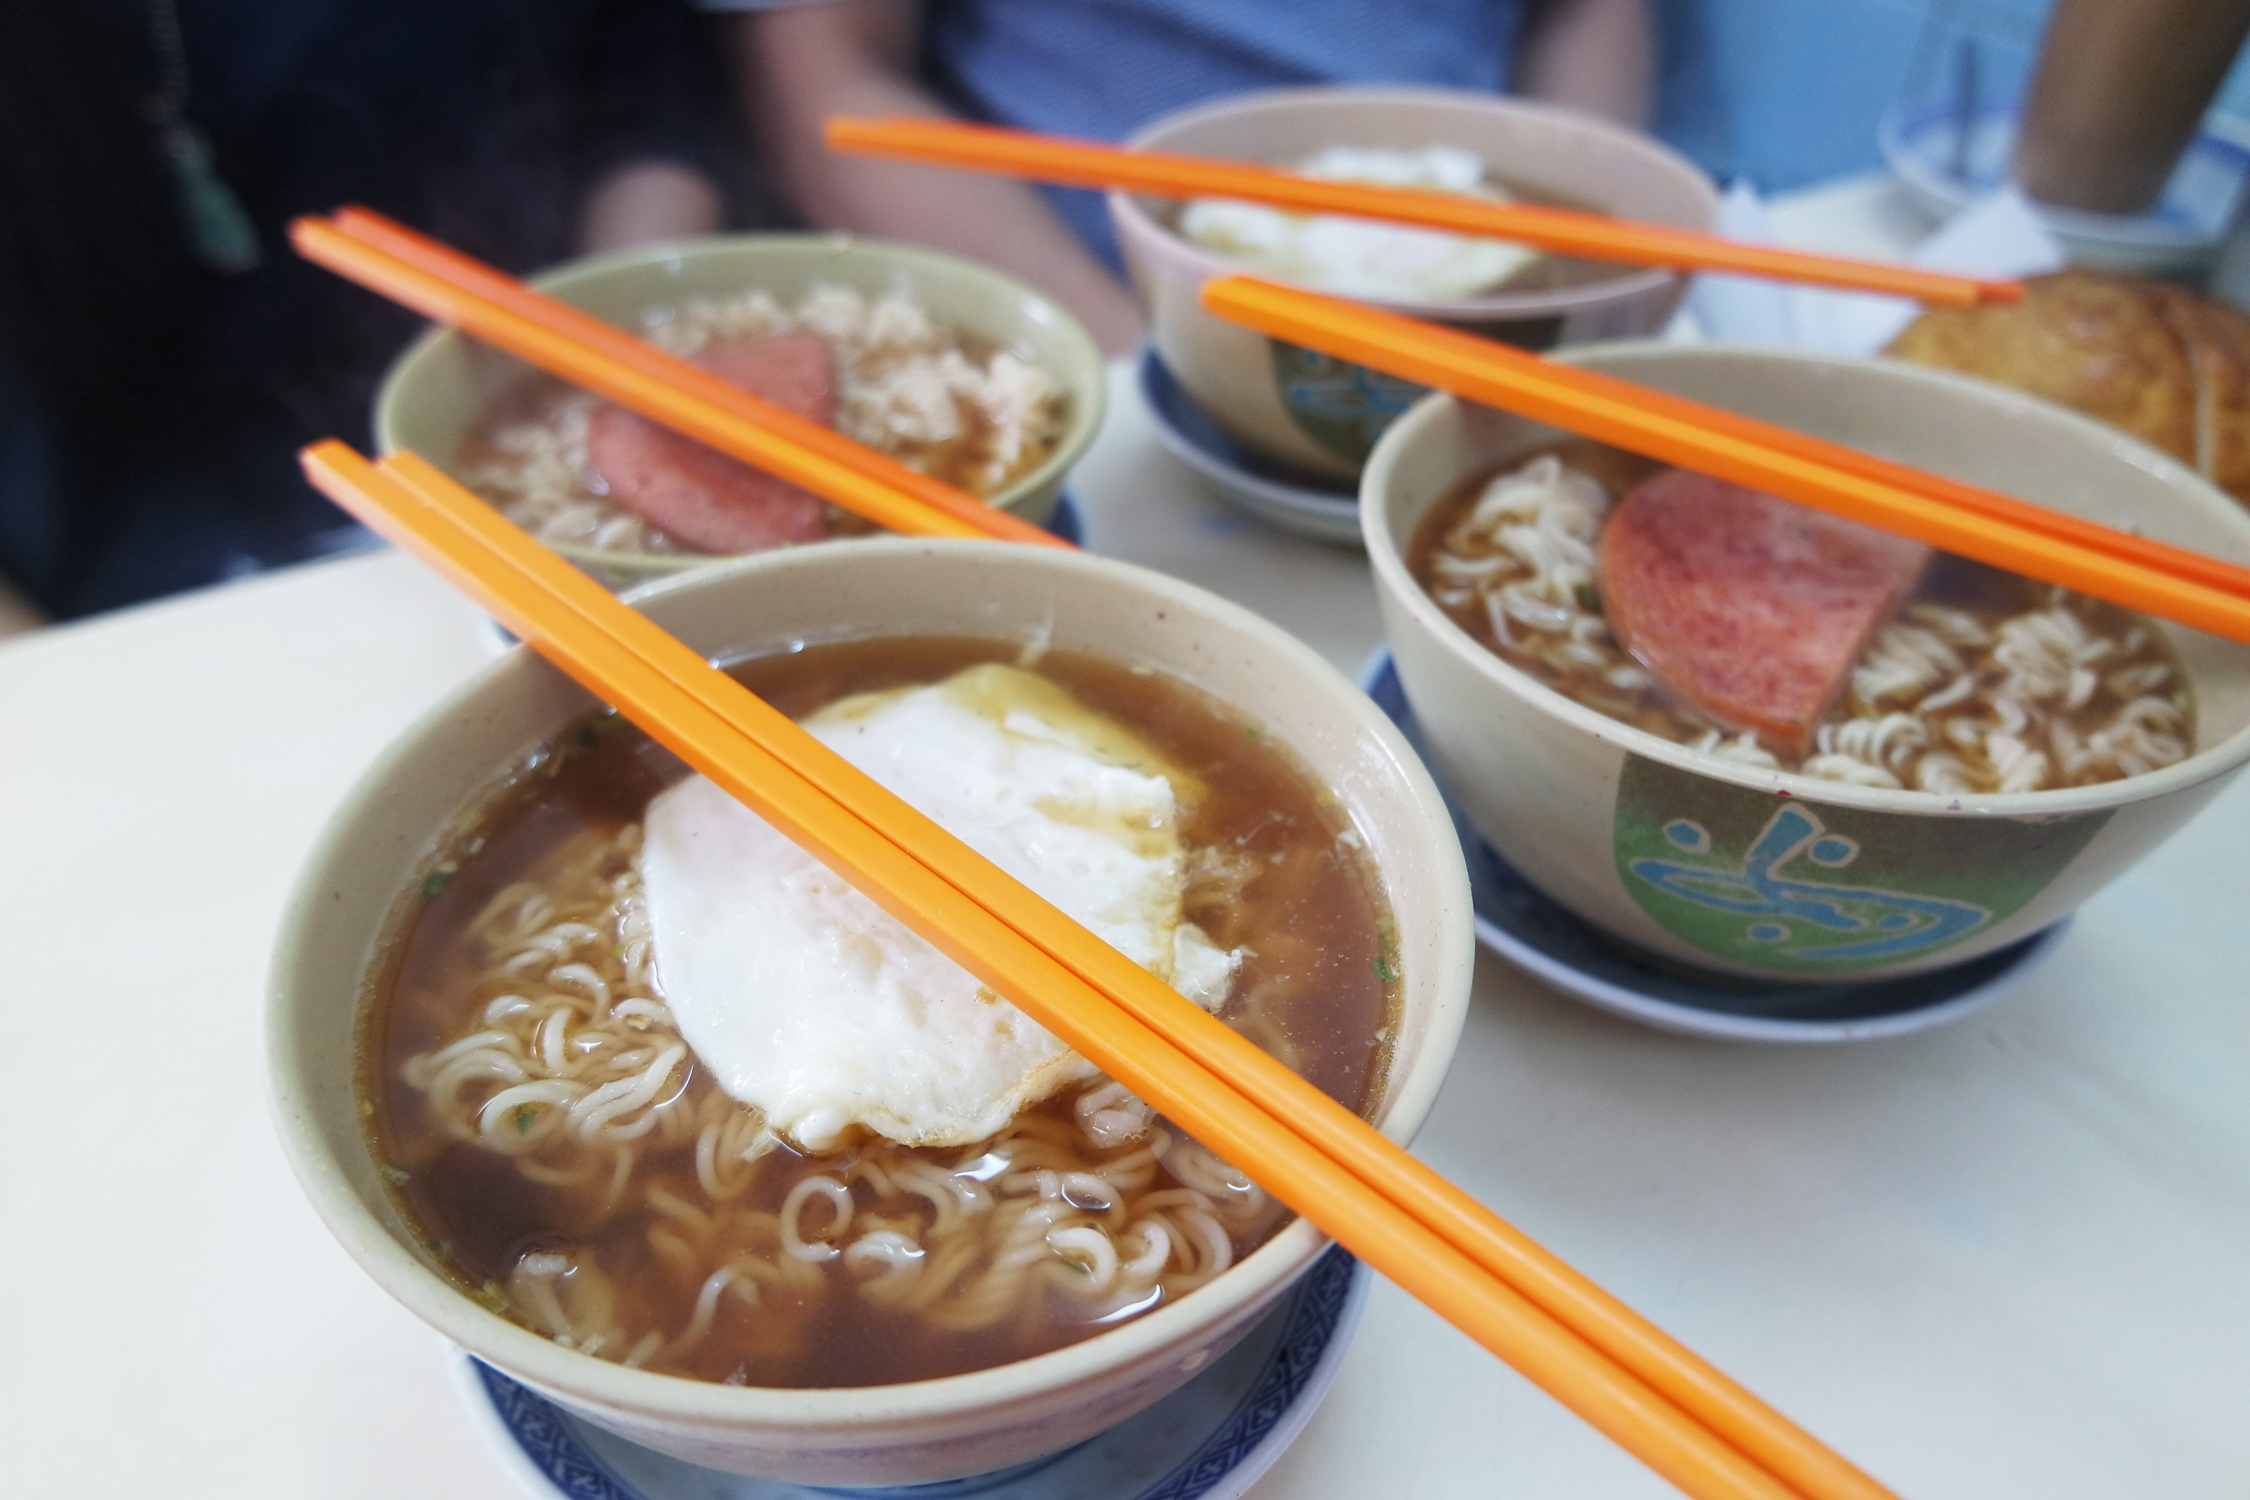 公仔面 Instant Noodles at Cafe Vong Kei